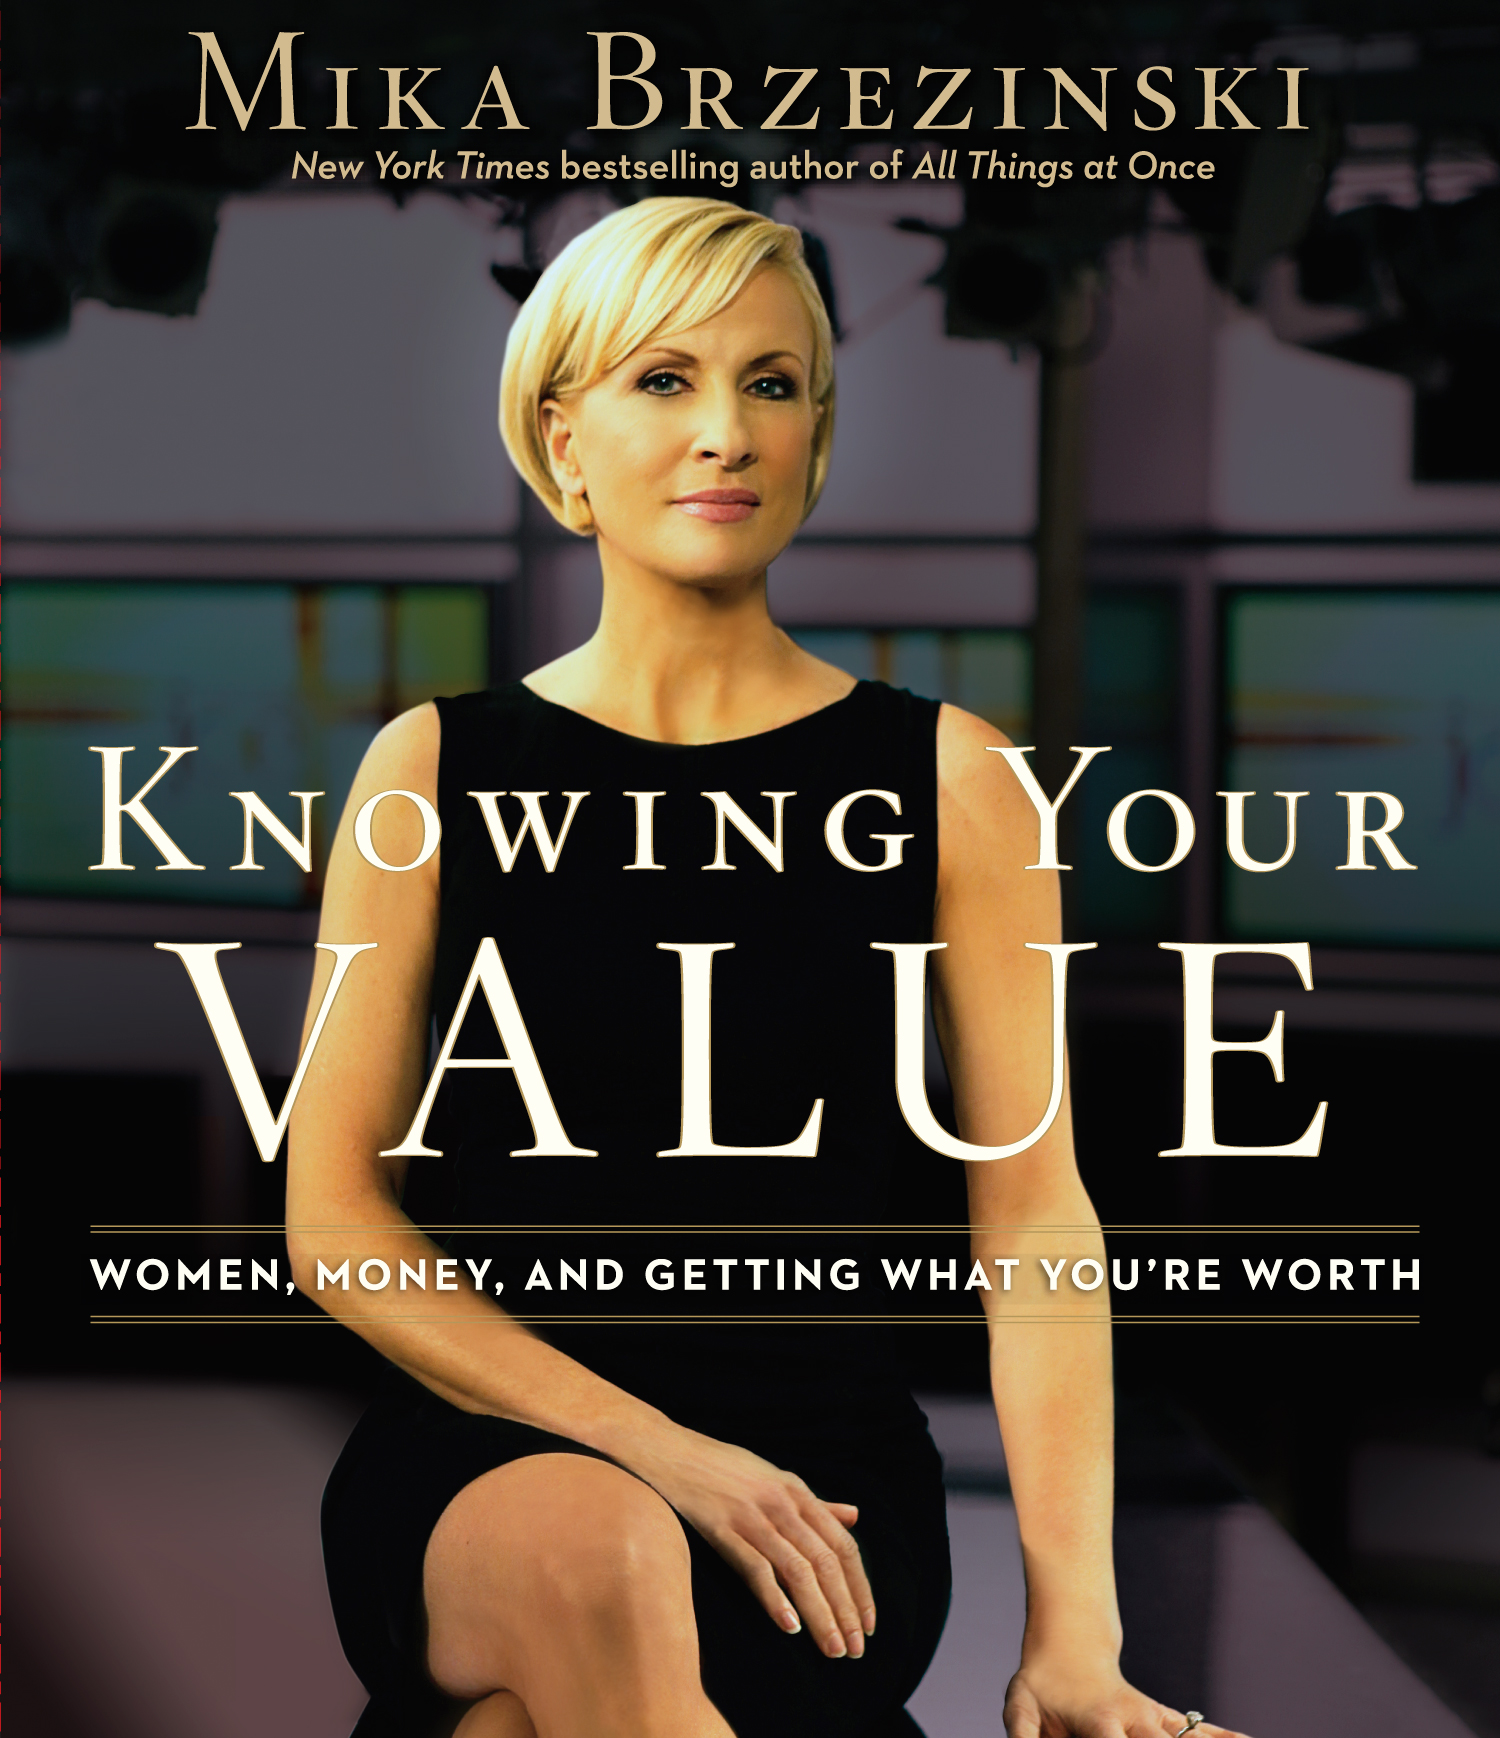 Knowing Your Value: Women, Money, and Getting What You're Worth - Mika Brzezinski Act Like a Success, Think Like a Success: Discovering Your Gift and the Way to Life's Riches - Steve Harvey - reviews for audiobook - quotes, rating, reviews, where to buy